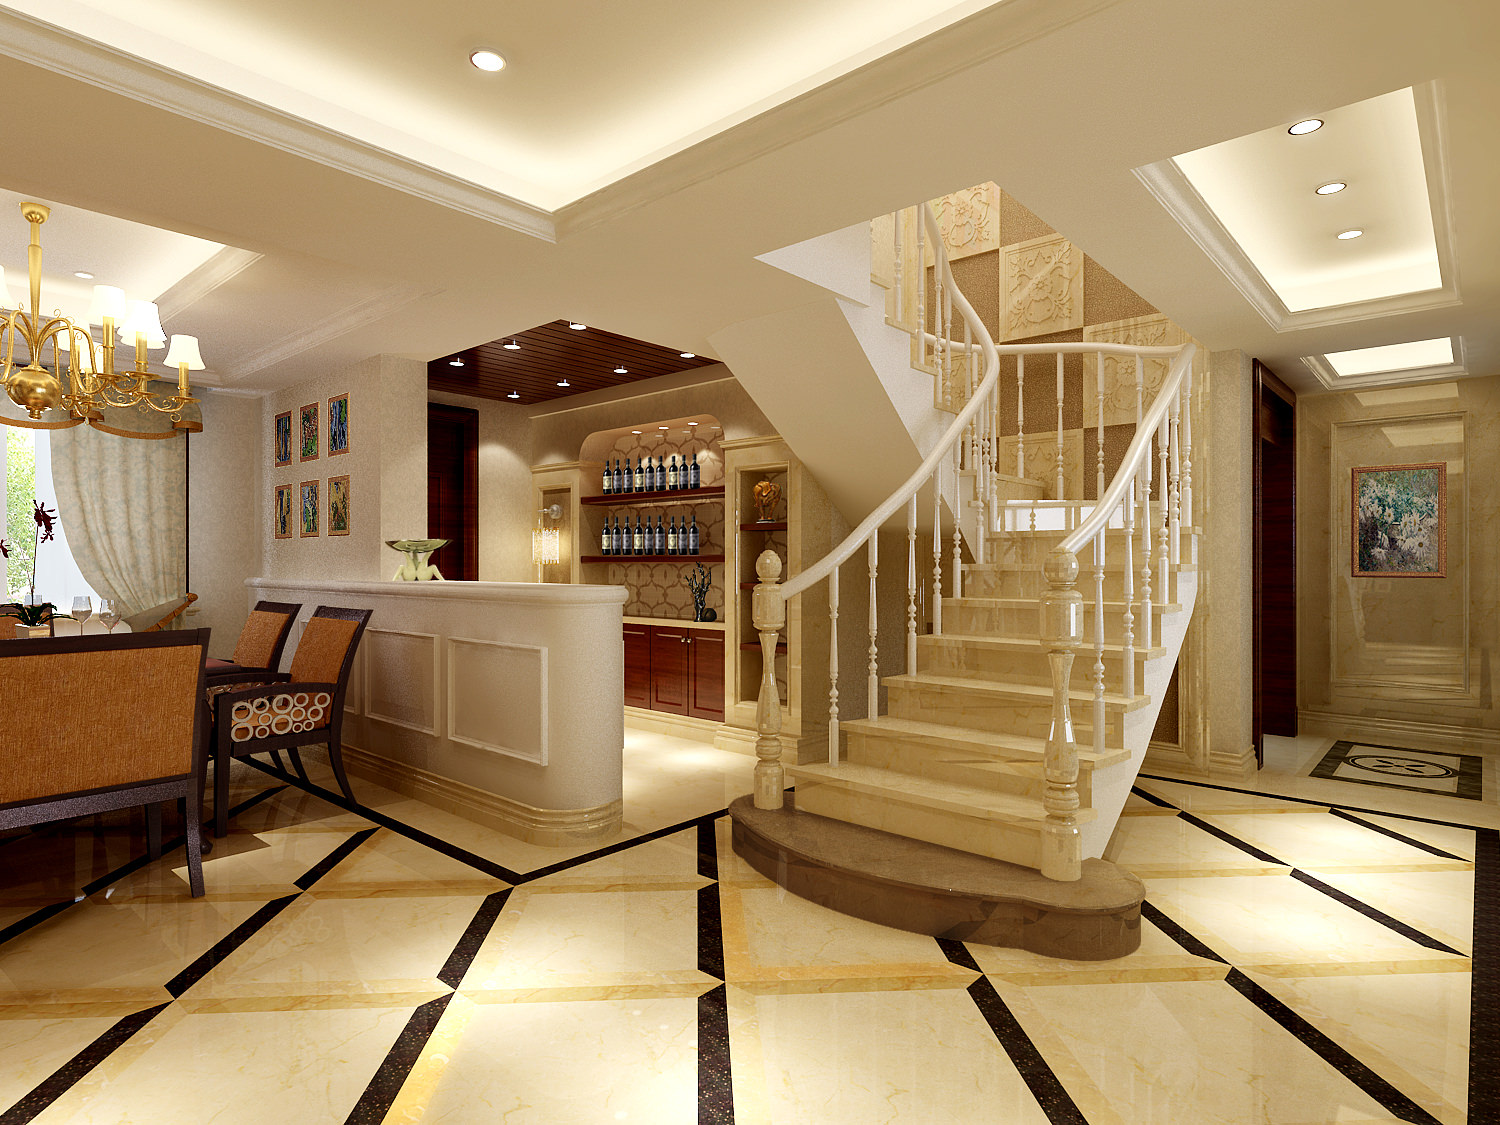 Modern Living Room With Stairs 3d Model Max 1 ... Part 60